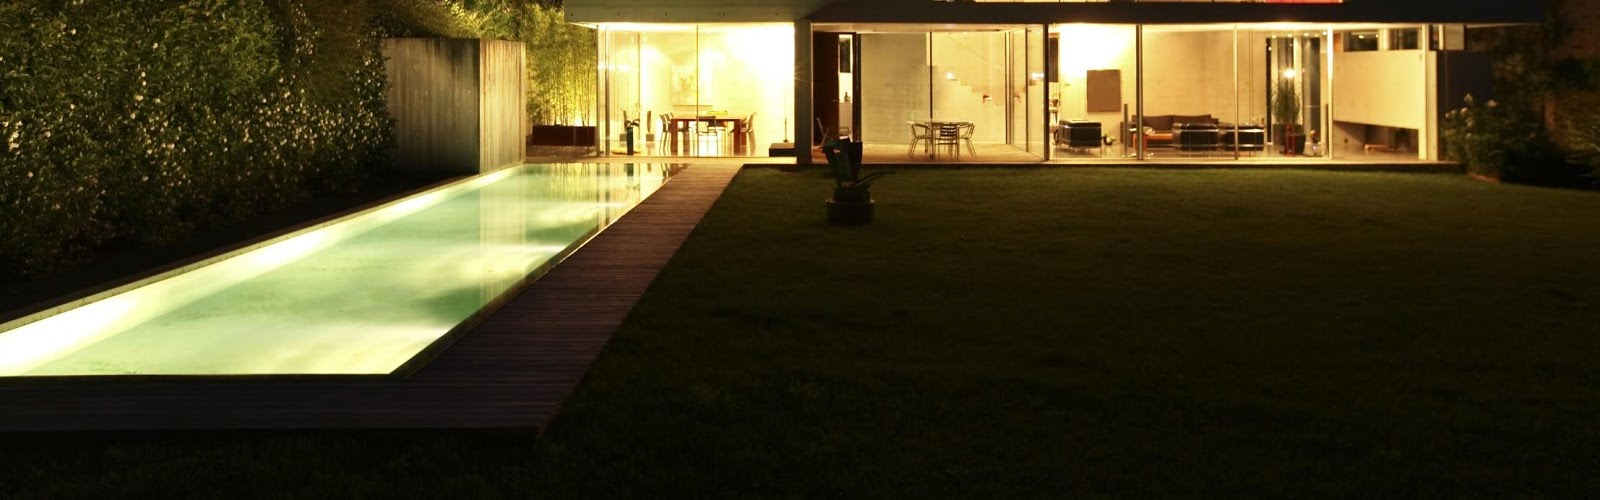 Garden Lighting by Classical Landscapes in Farnham